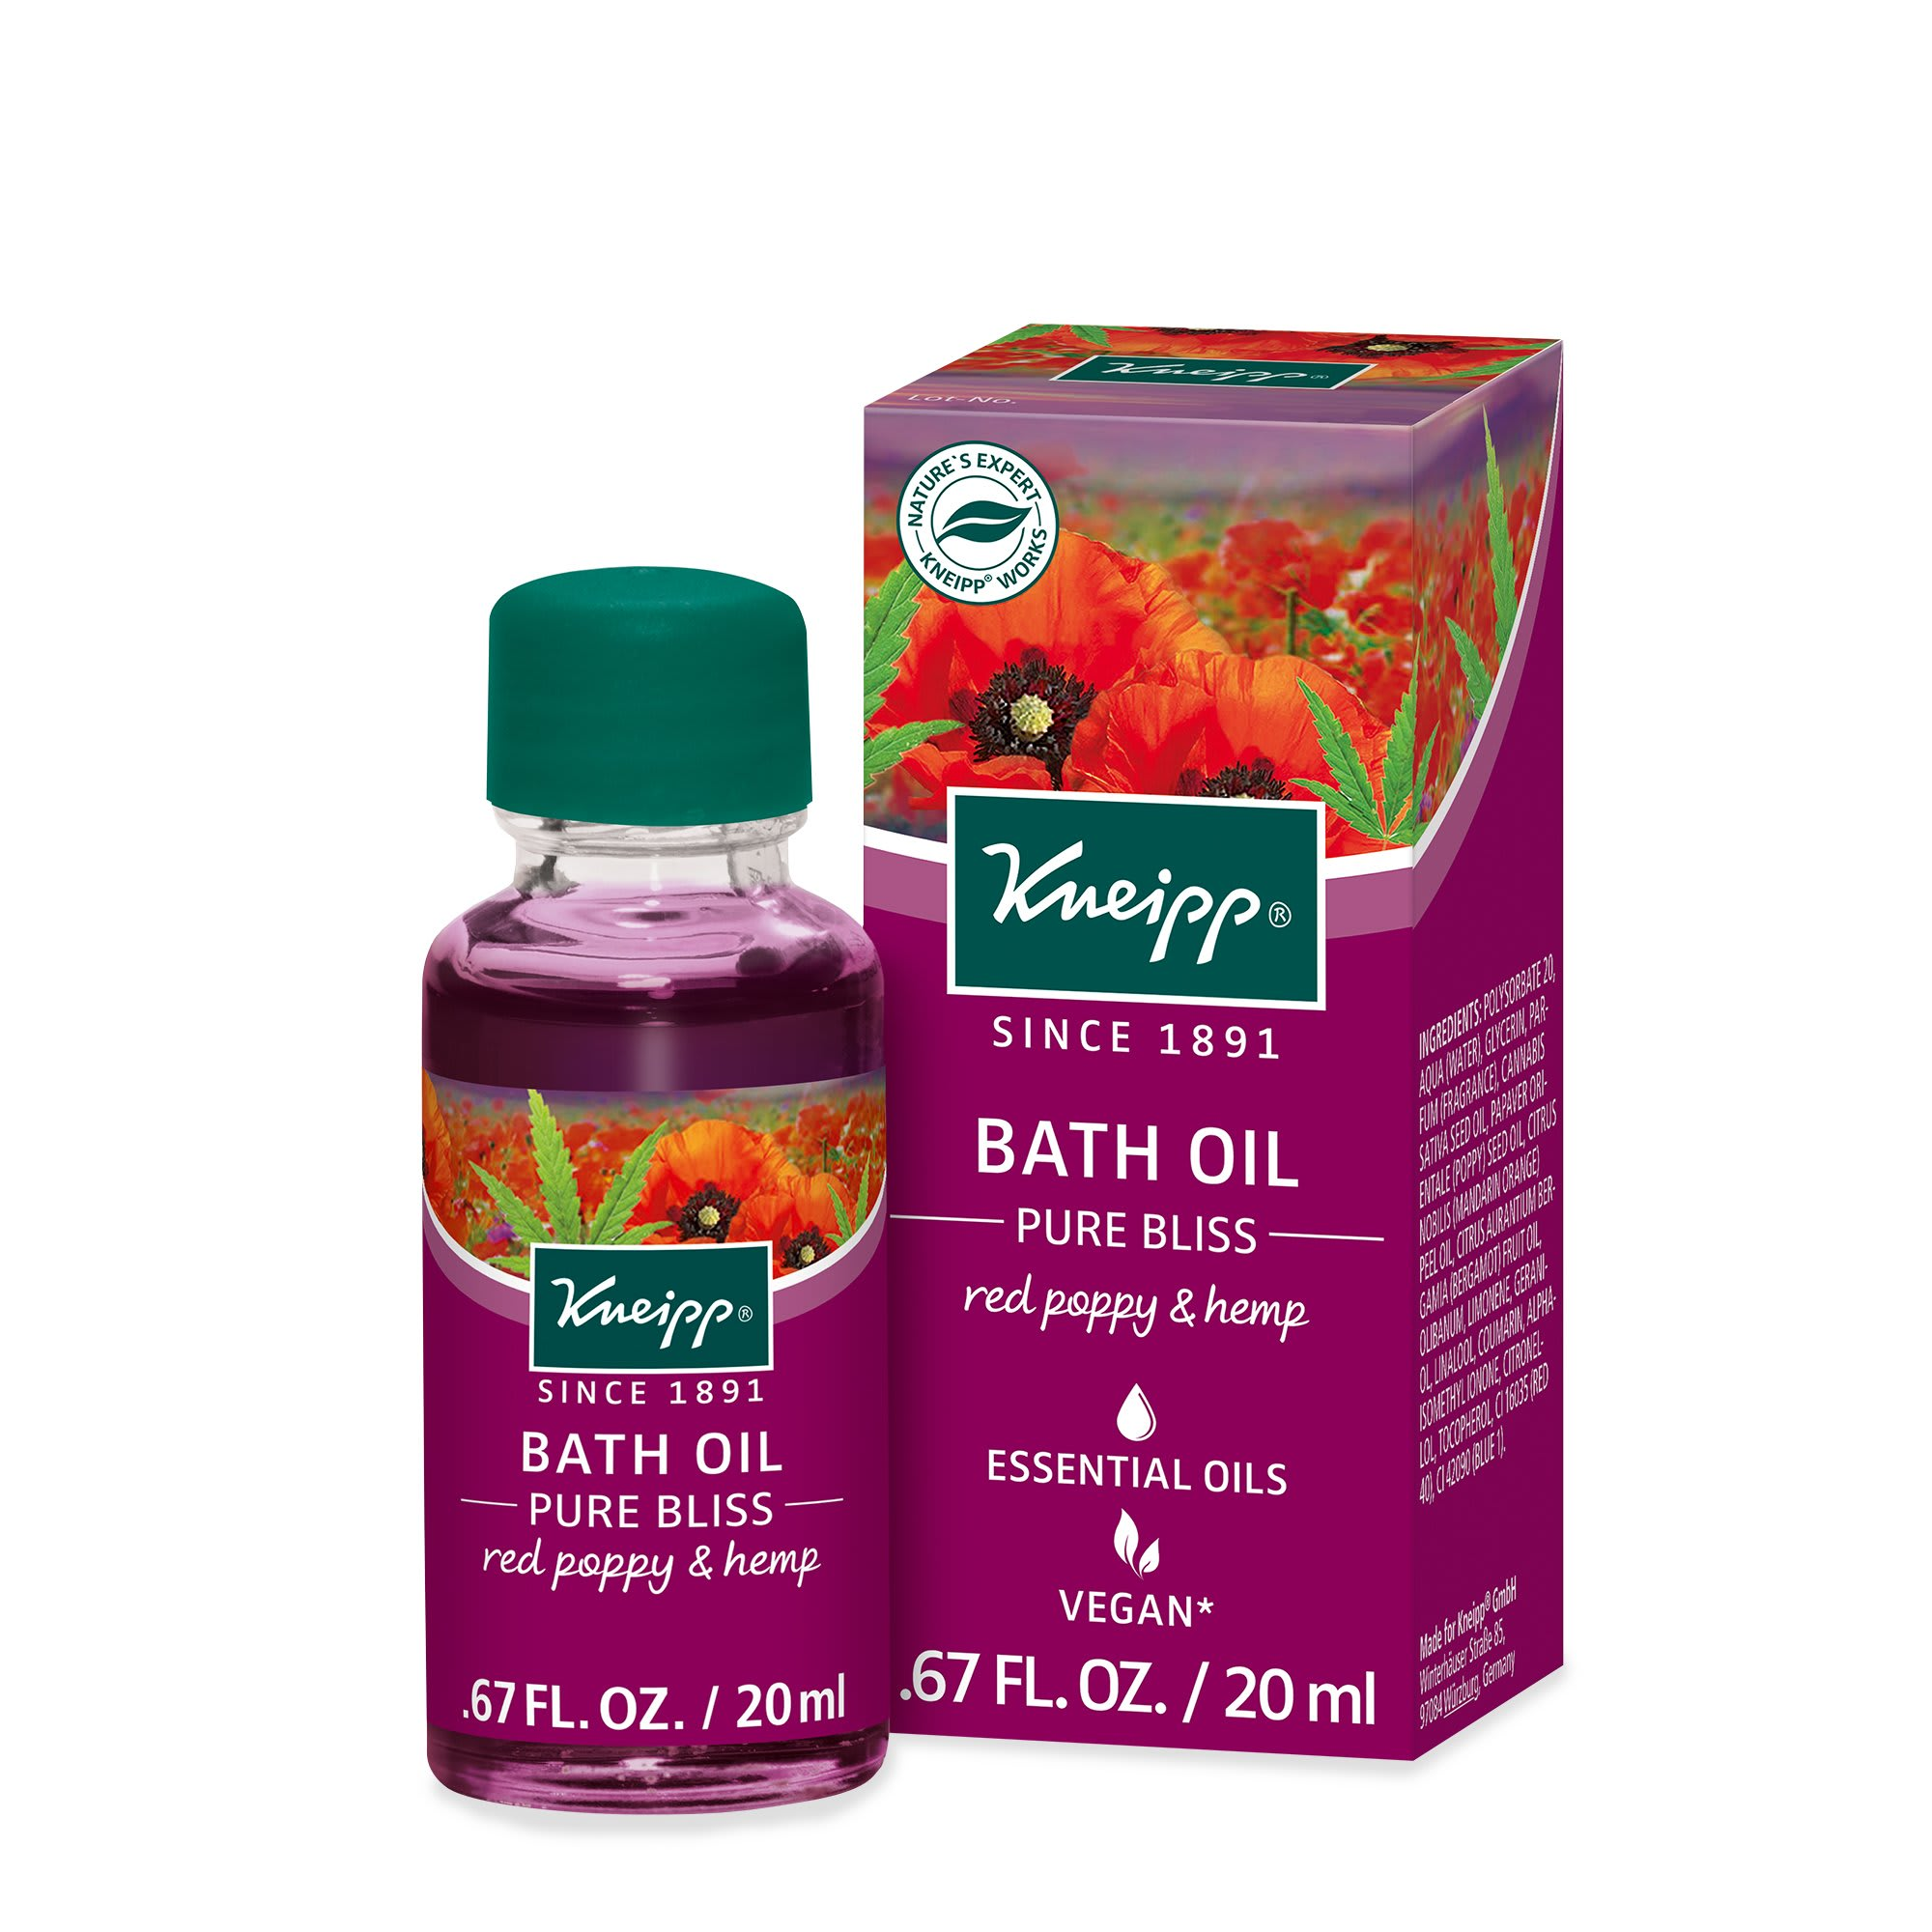 Kneipp Pure Bliss Bath Oil